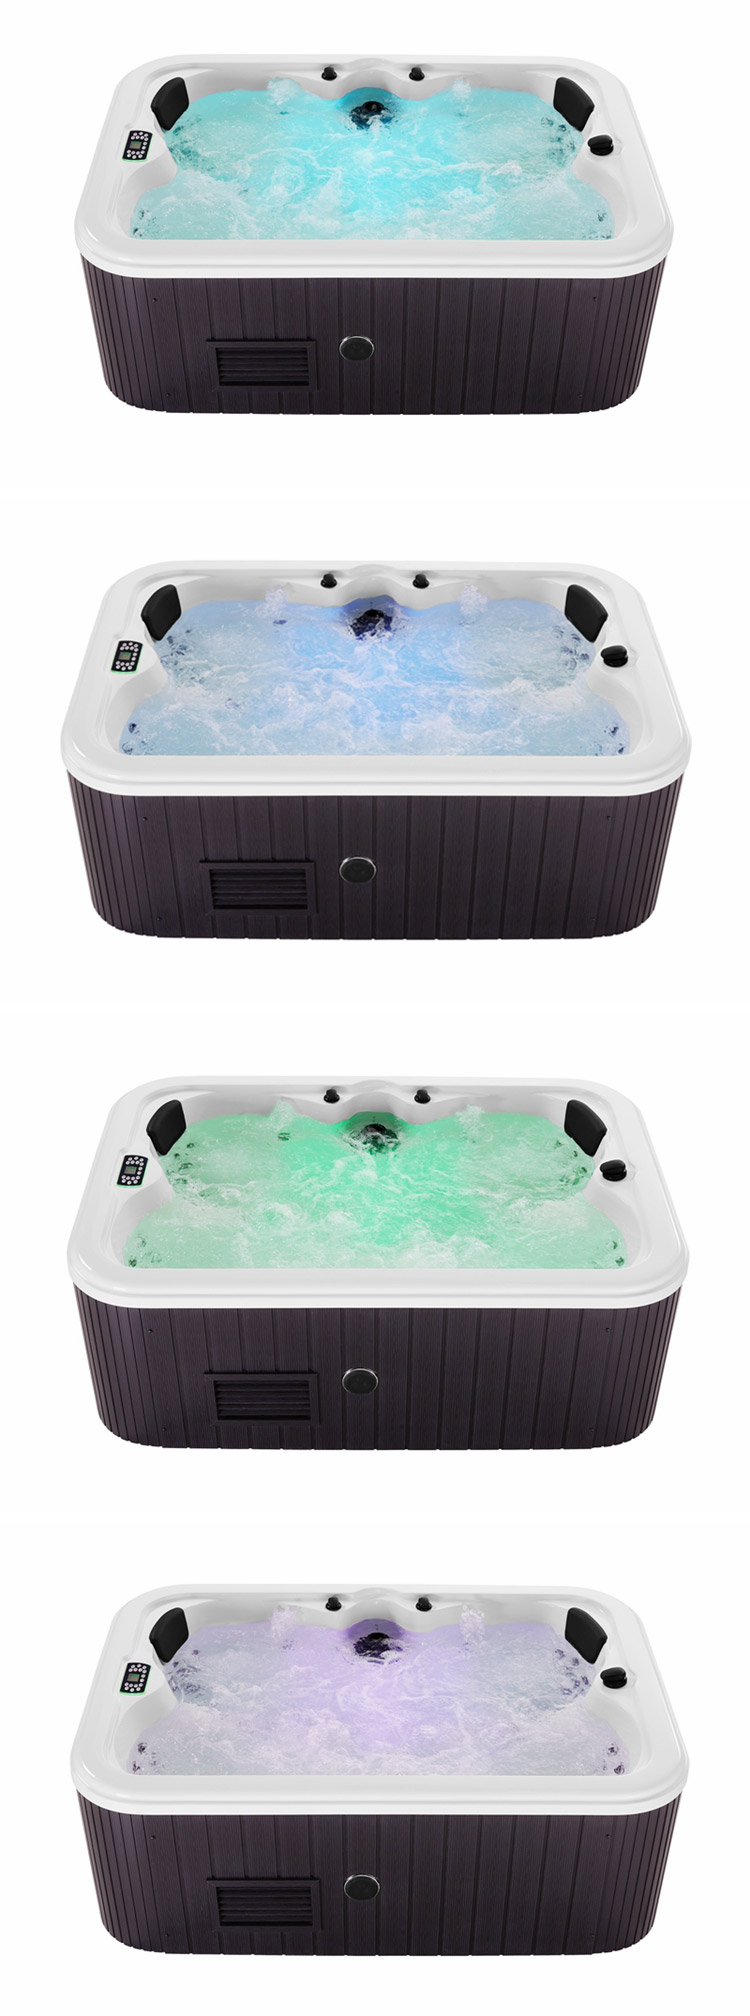 neck shoulder massage hydro jets outdoor 3 person spa soft tubs hot tub bathtub